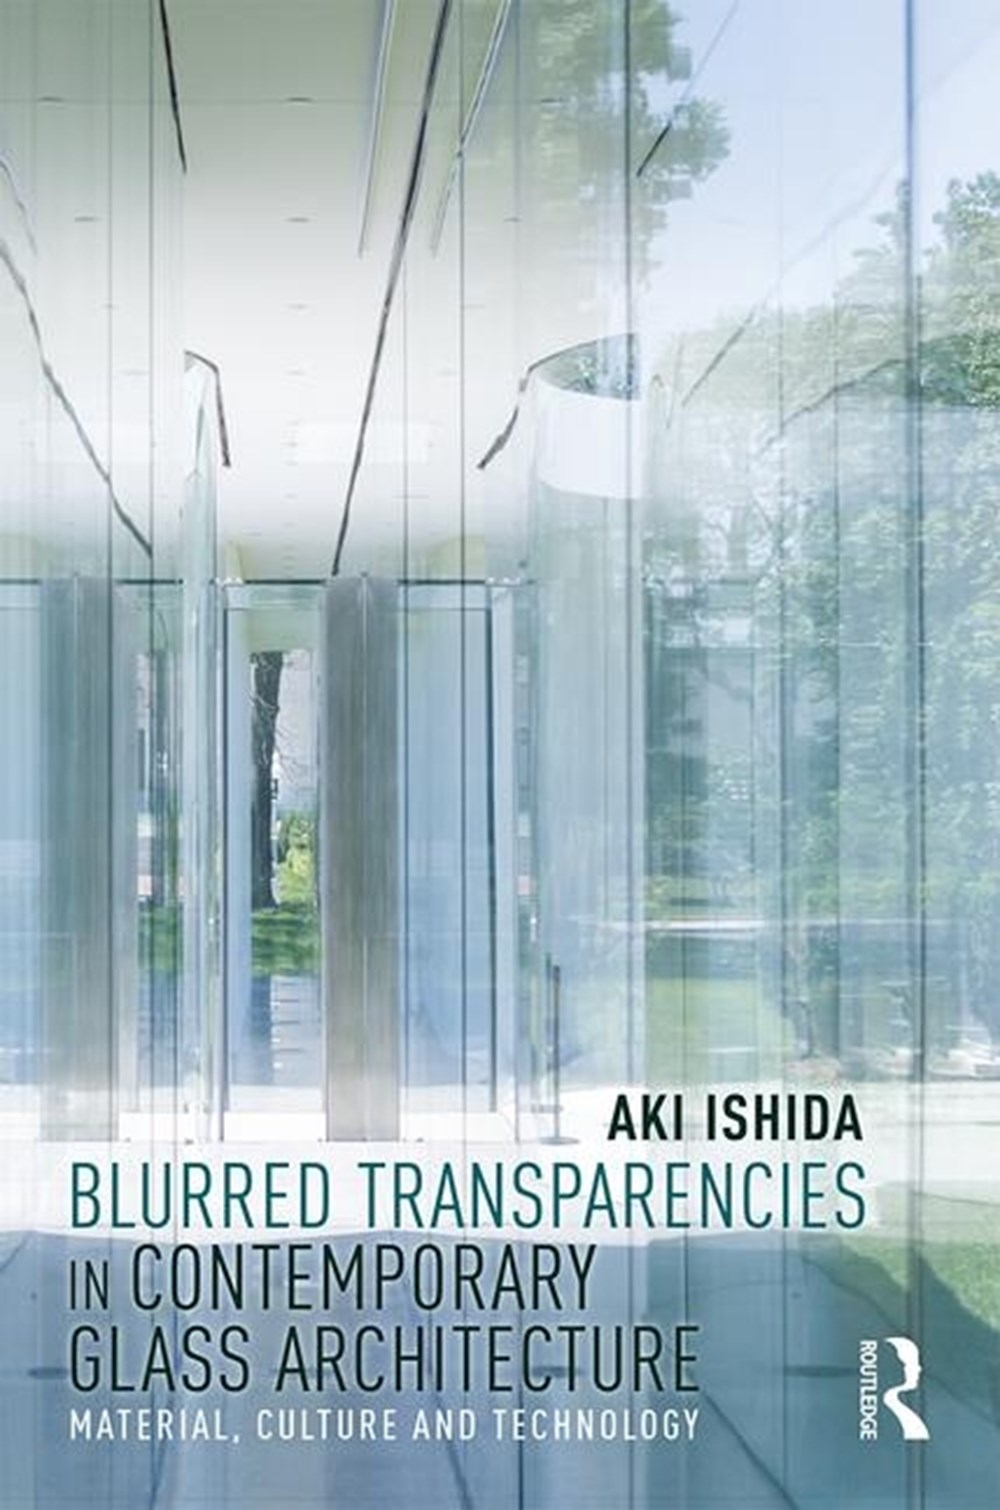 Blurred Transparencies in Contemporary Glass Architecture Material, Culture, and Technology